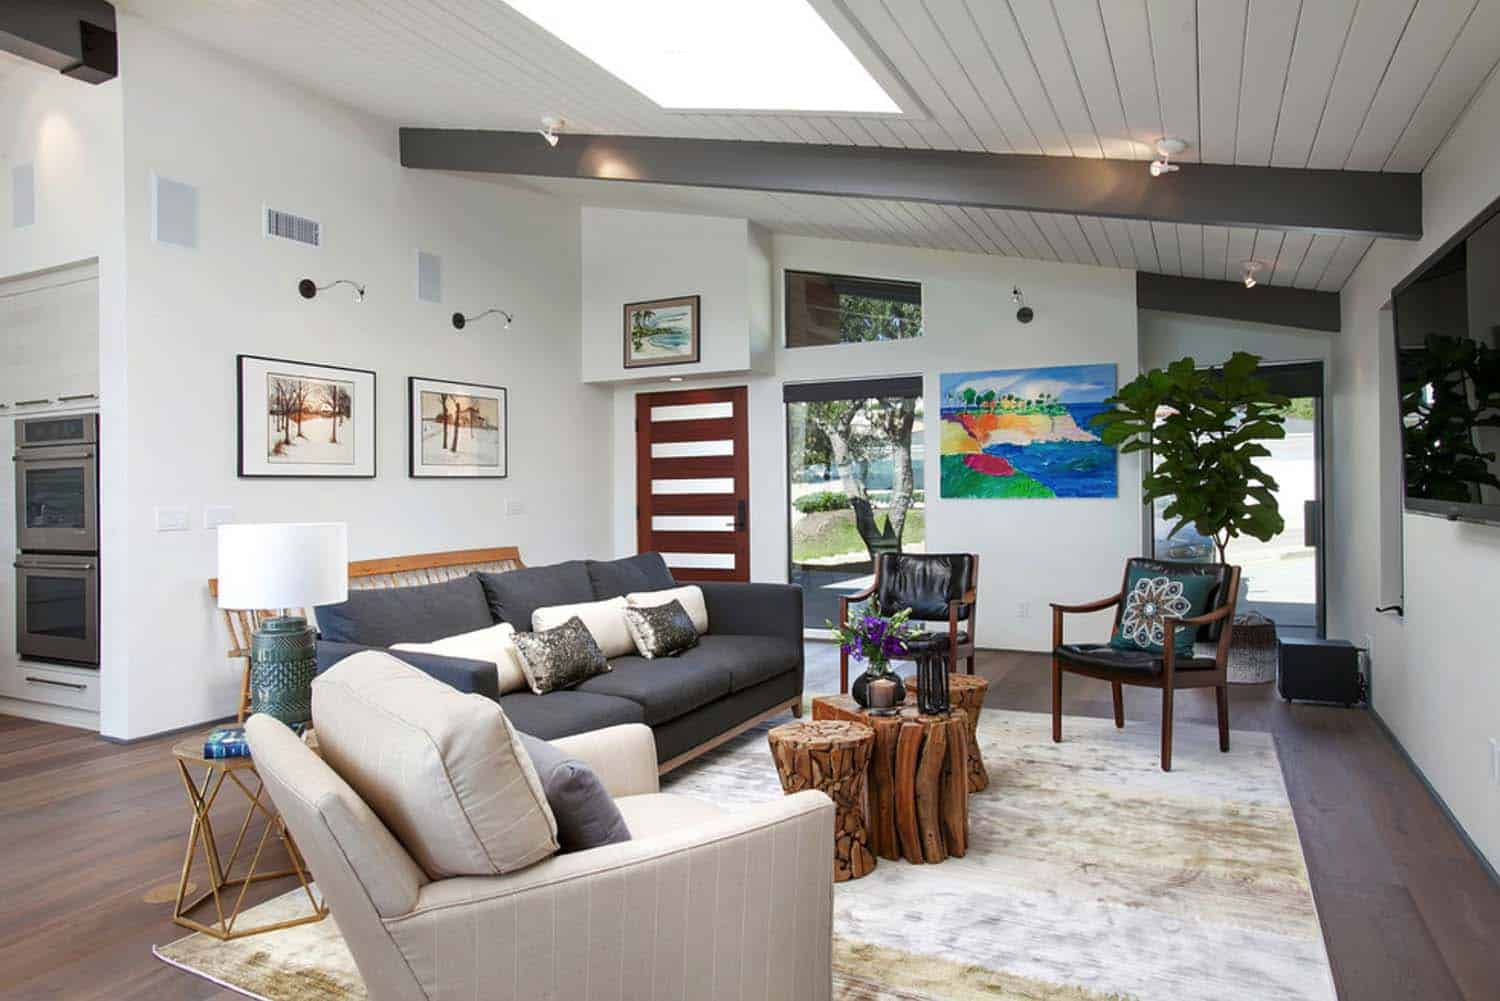 Gorgeous mid-century modern home renovation in San Diego